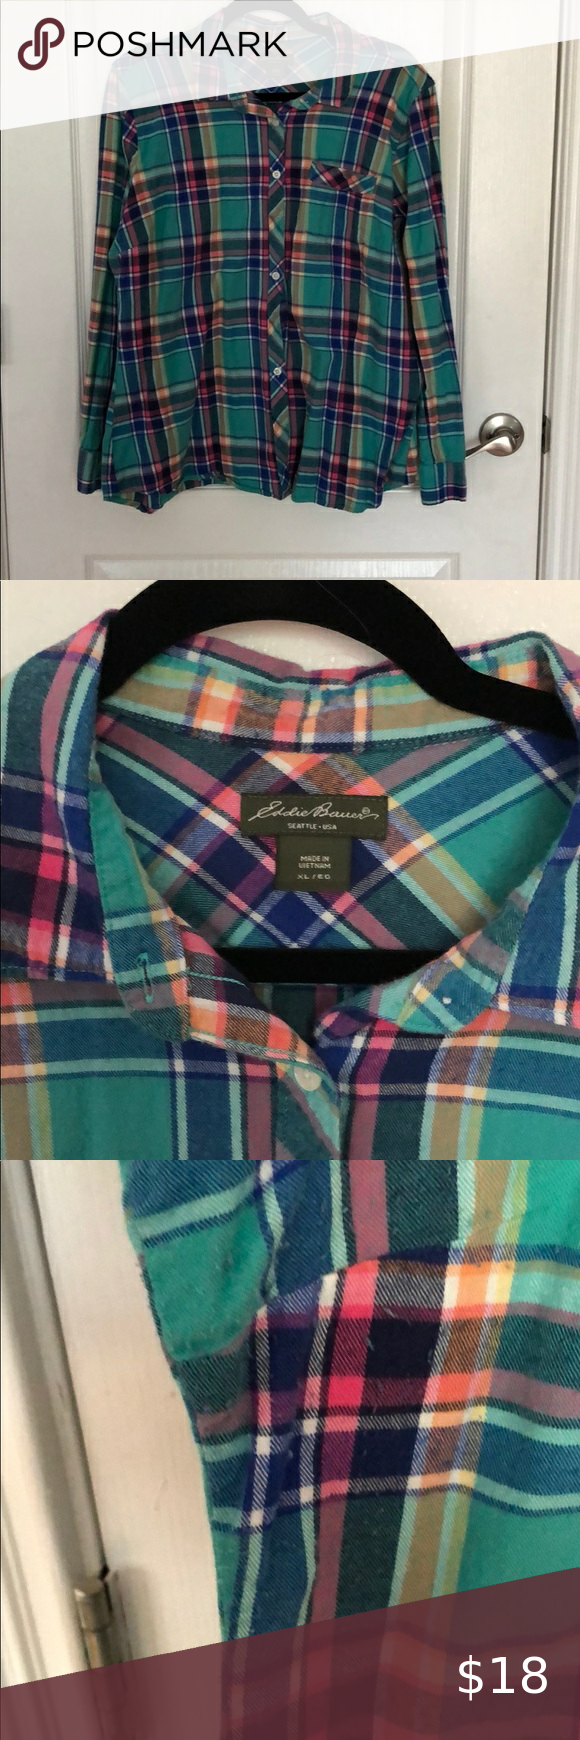 Eddie Bauer Summer Plaid in 2020 Summer plaid, Plaid